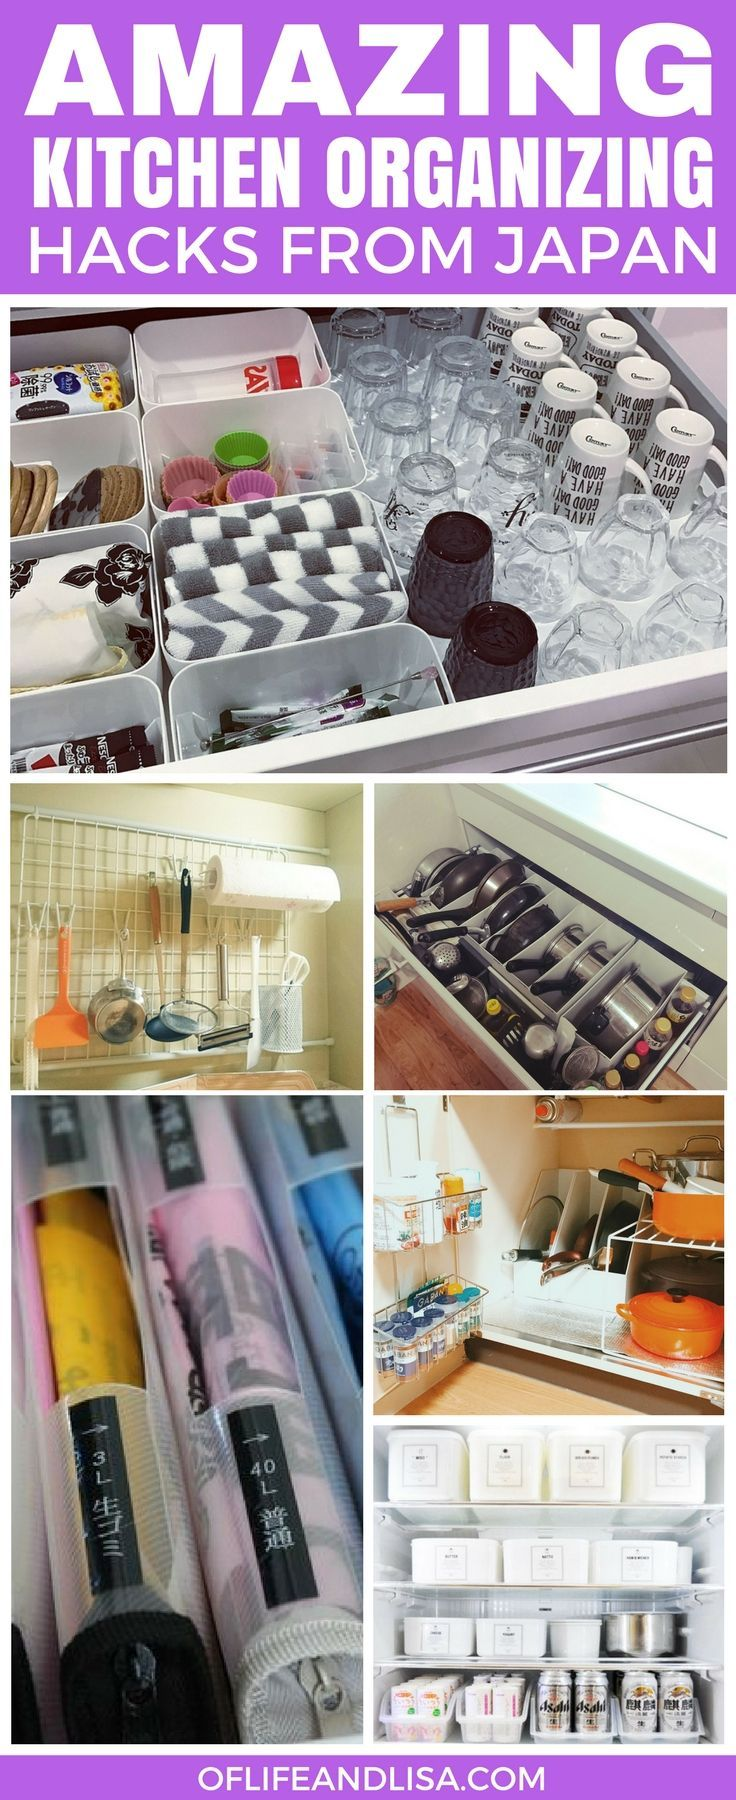 7 Mind Blowing Kitchen Organizing Ideas From Japan Top Creative